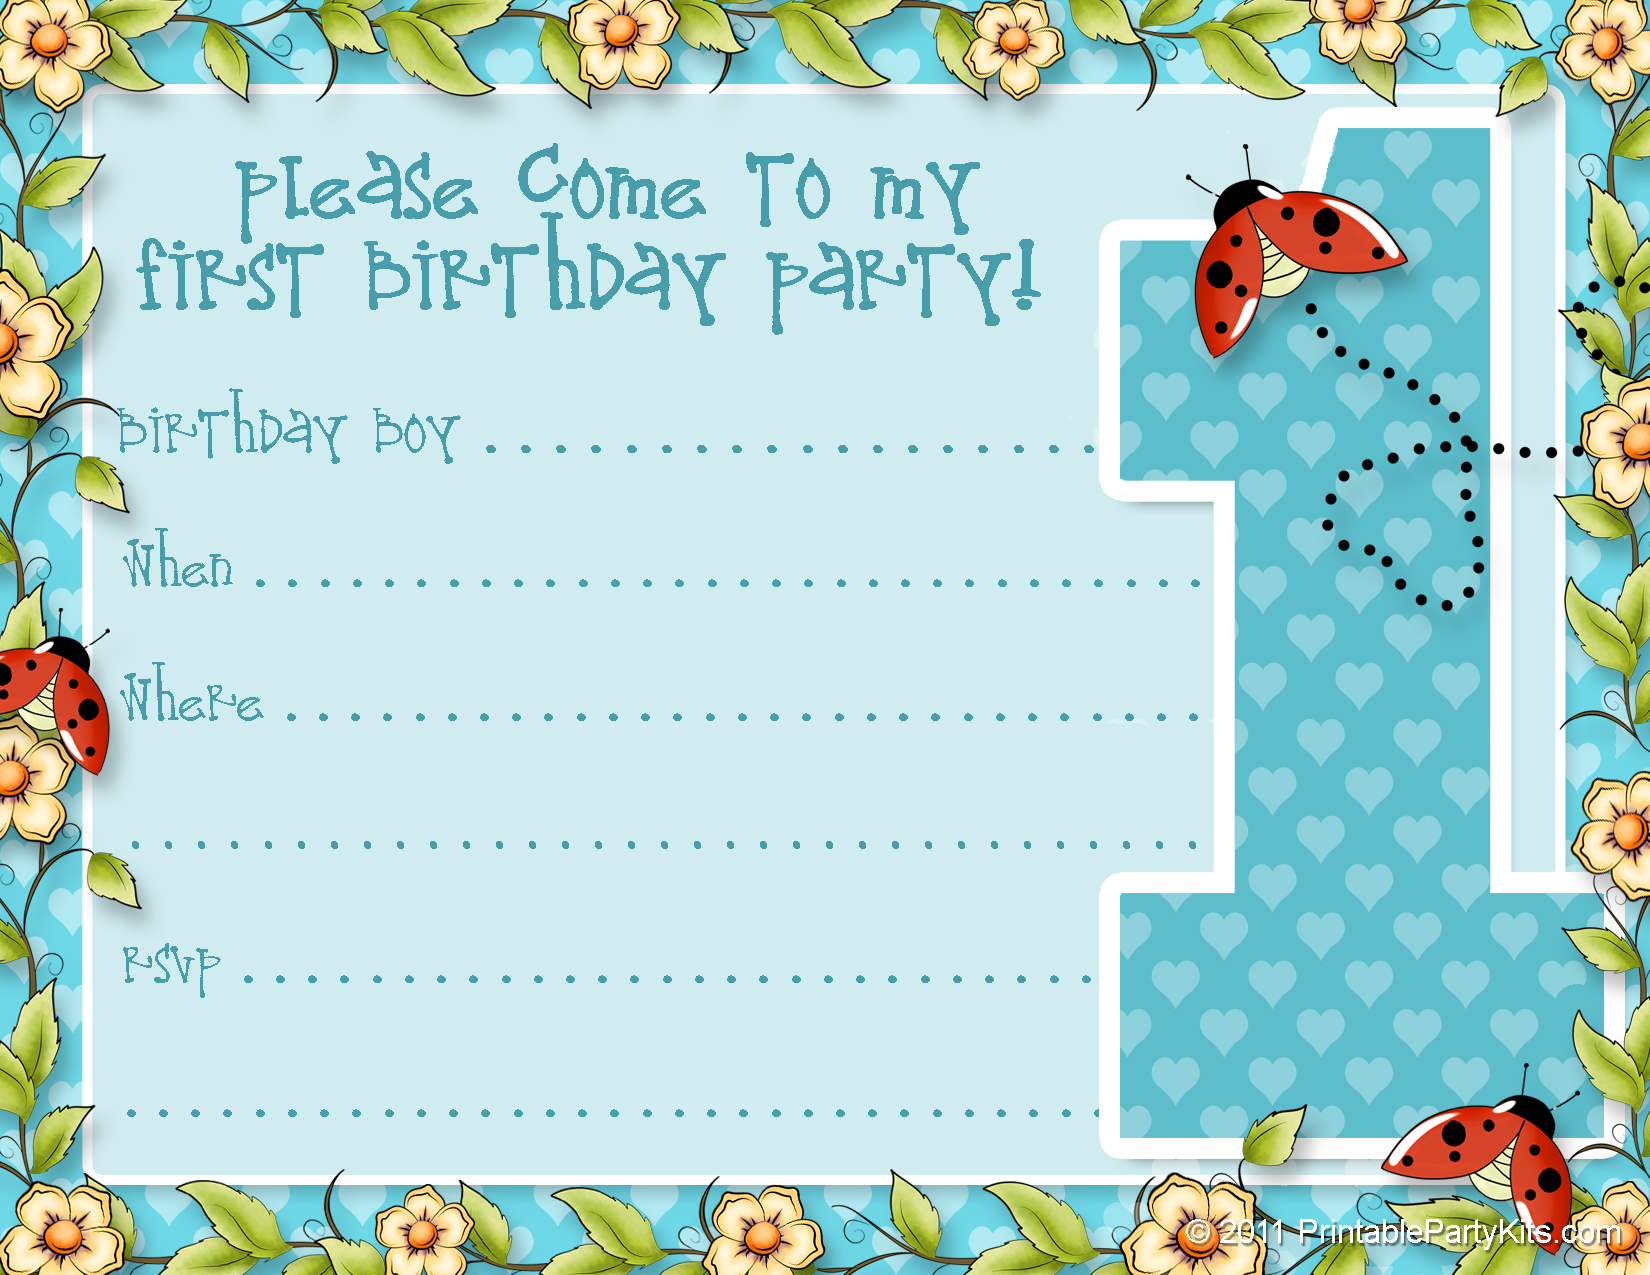 Free Birthday Invitation Templates You Will Love These - Blank birthday invitation card templates